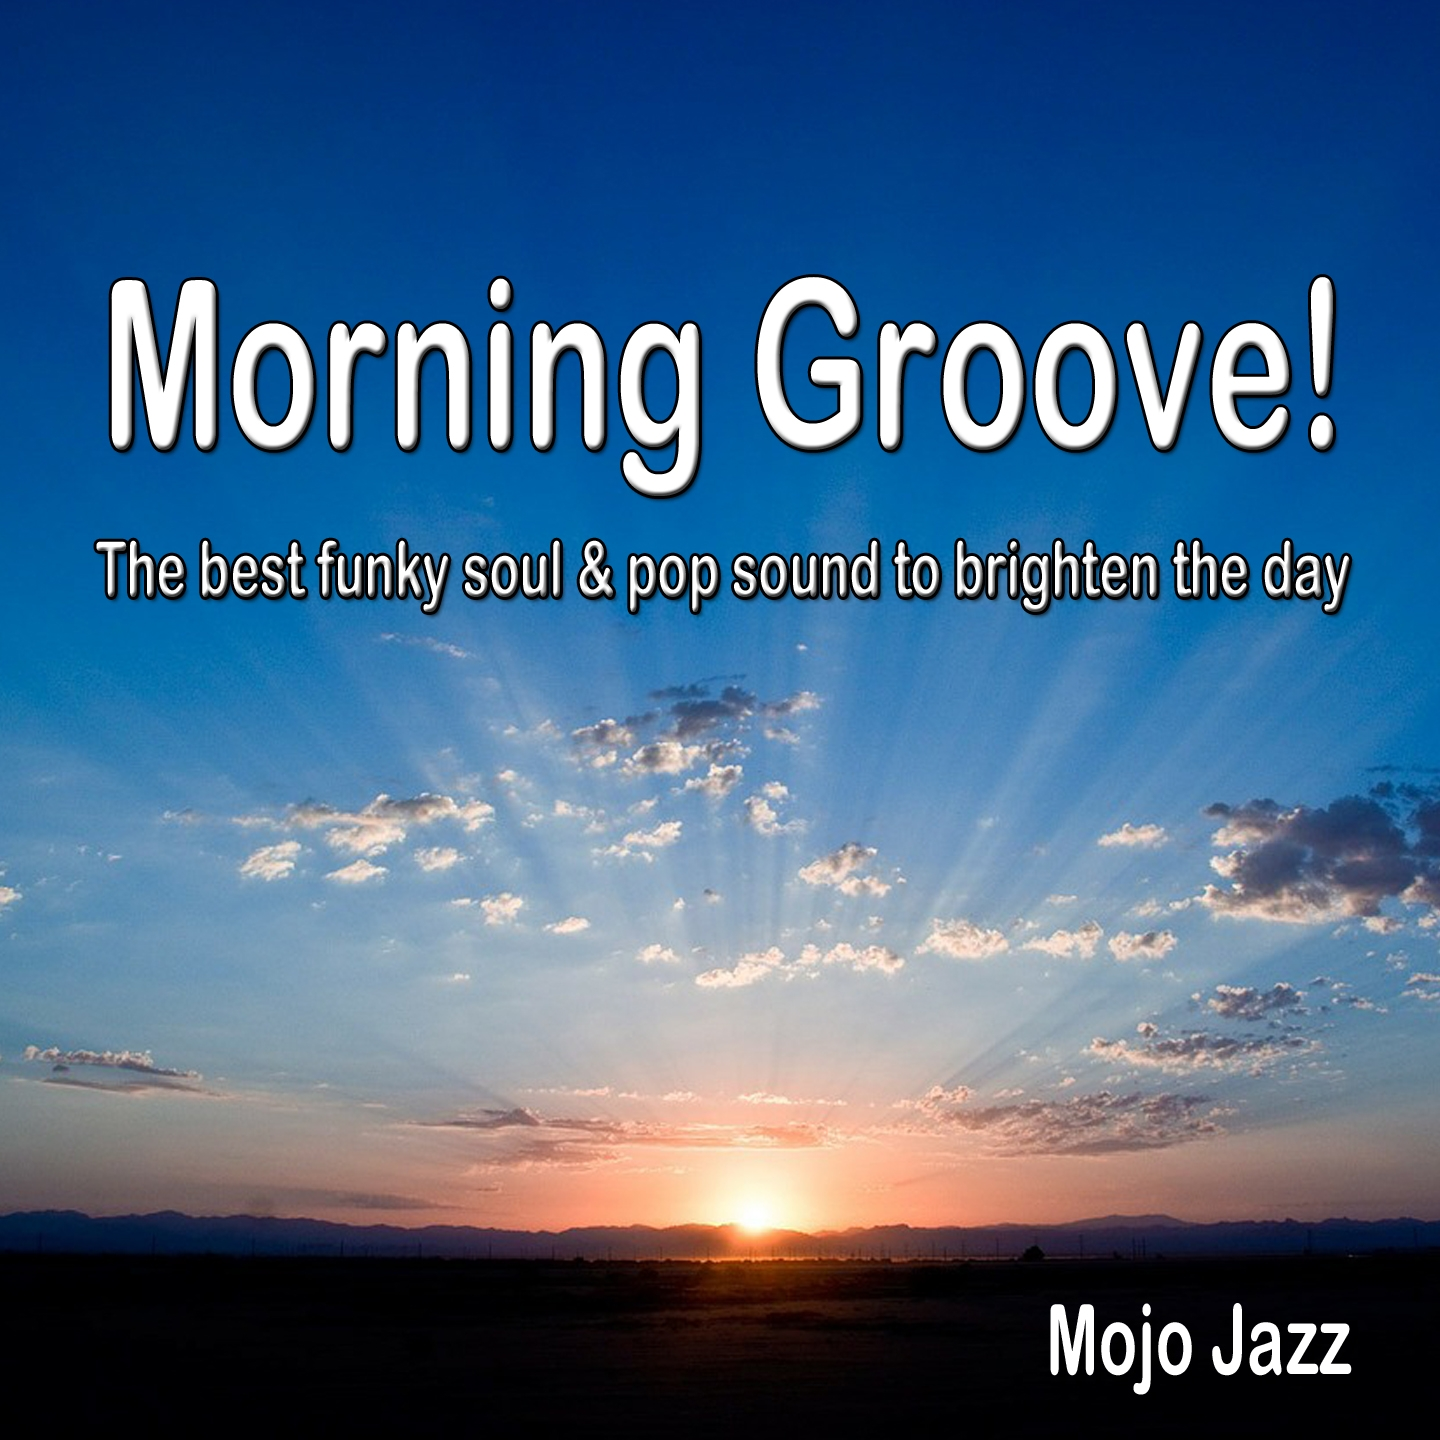 Morning Groove! The Best Funky Soul&Pop Sound to Brighten the Day